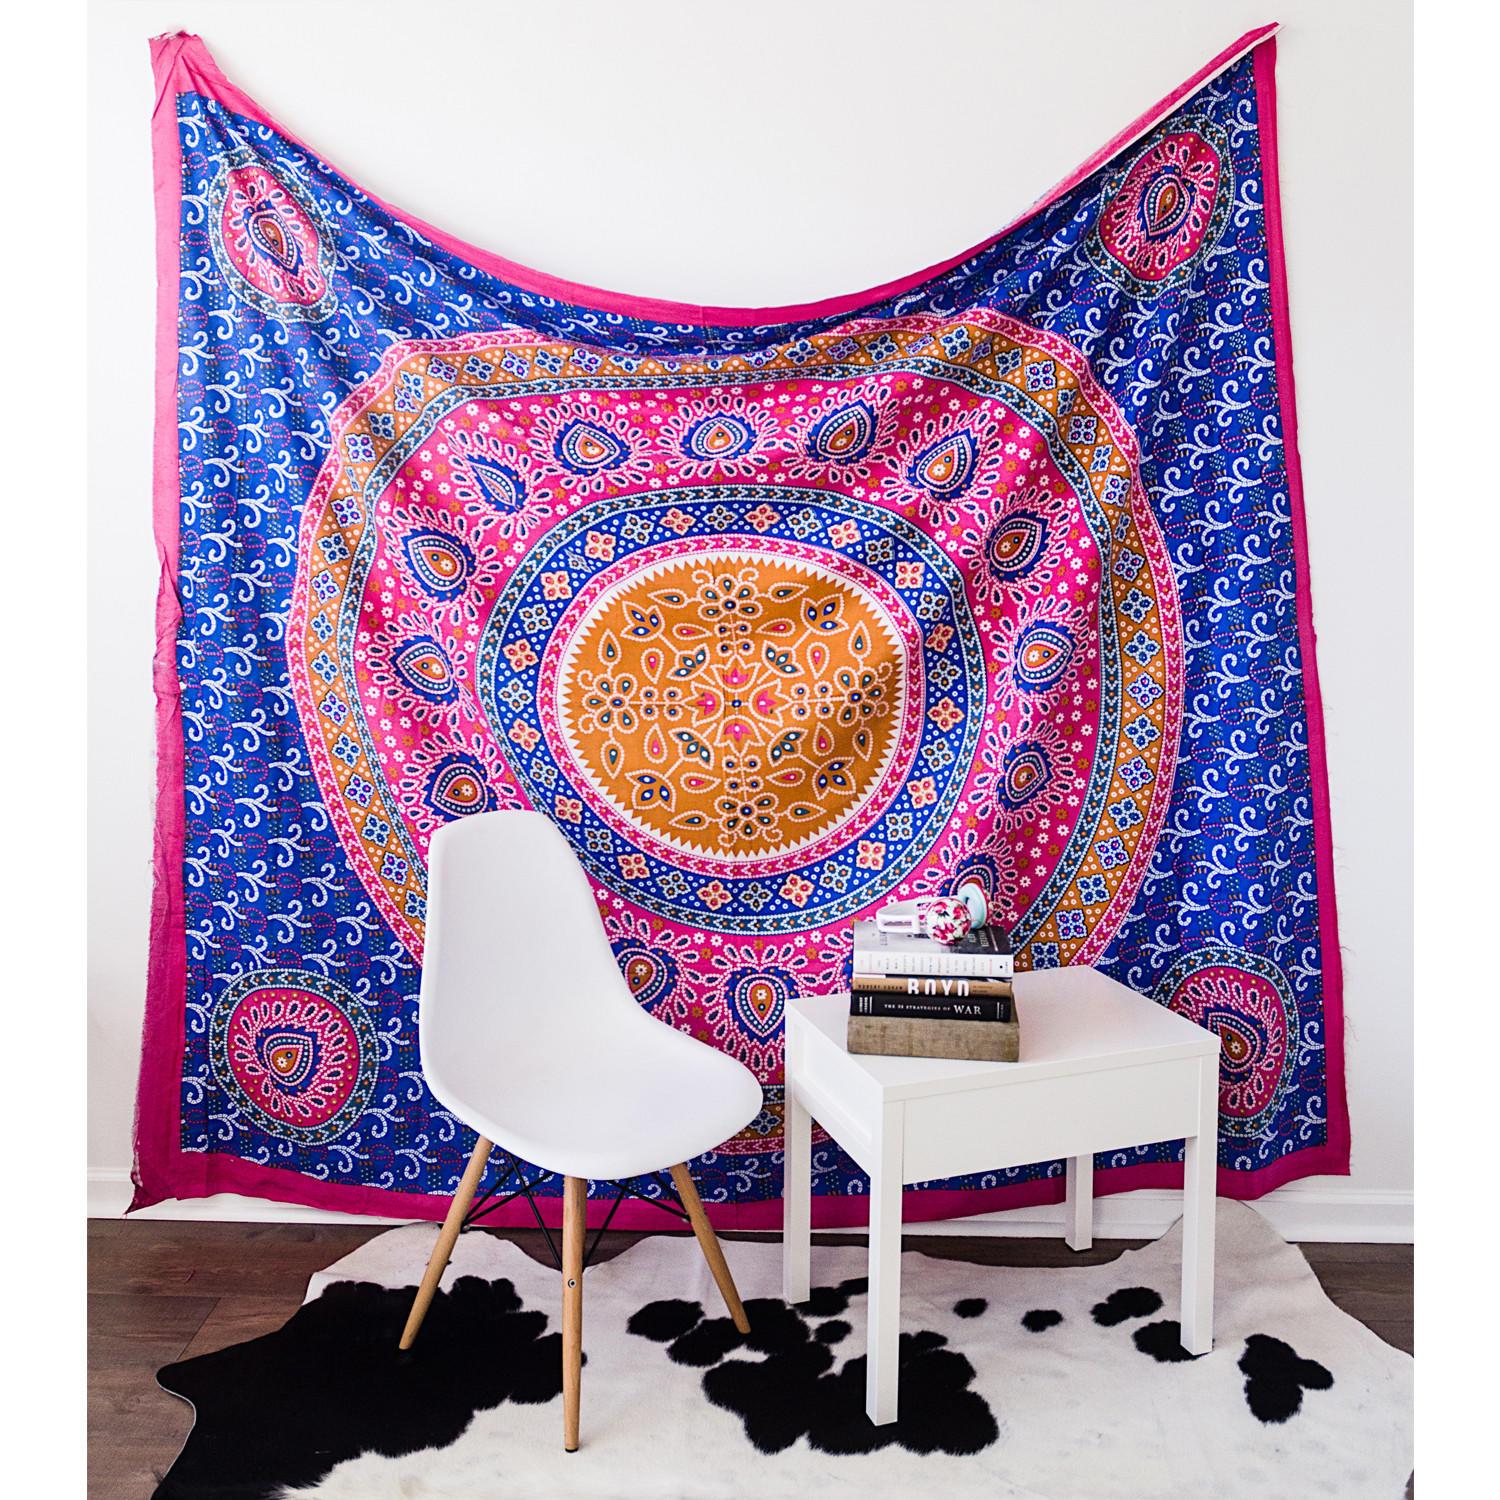 color indian bedspread mandala dp wall blue cms blanket art amazon medallion craft com india hippie x tapestries tapestry hanging picnic theme cotton